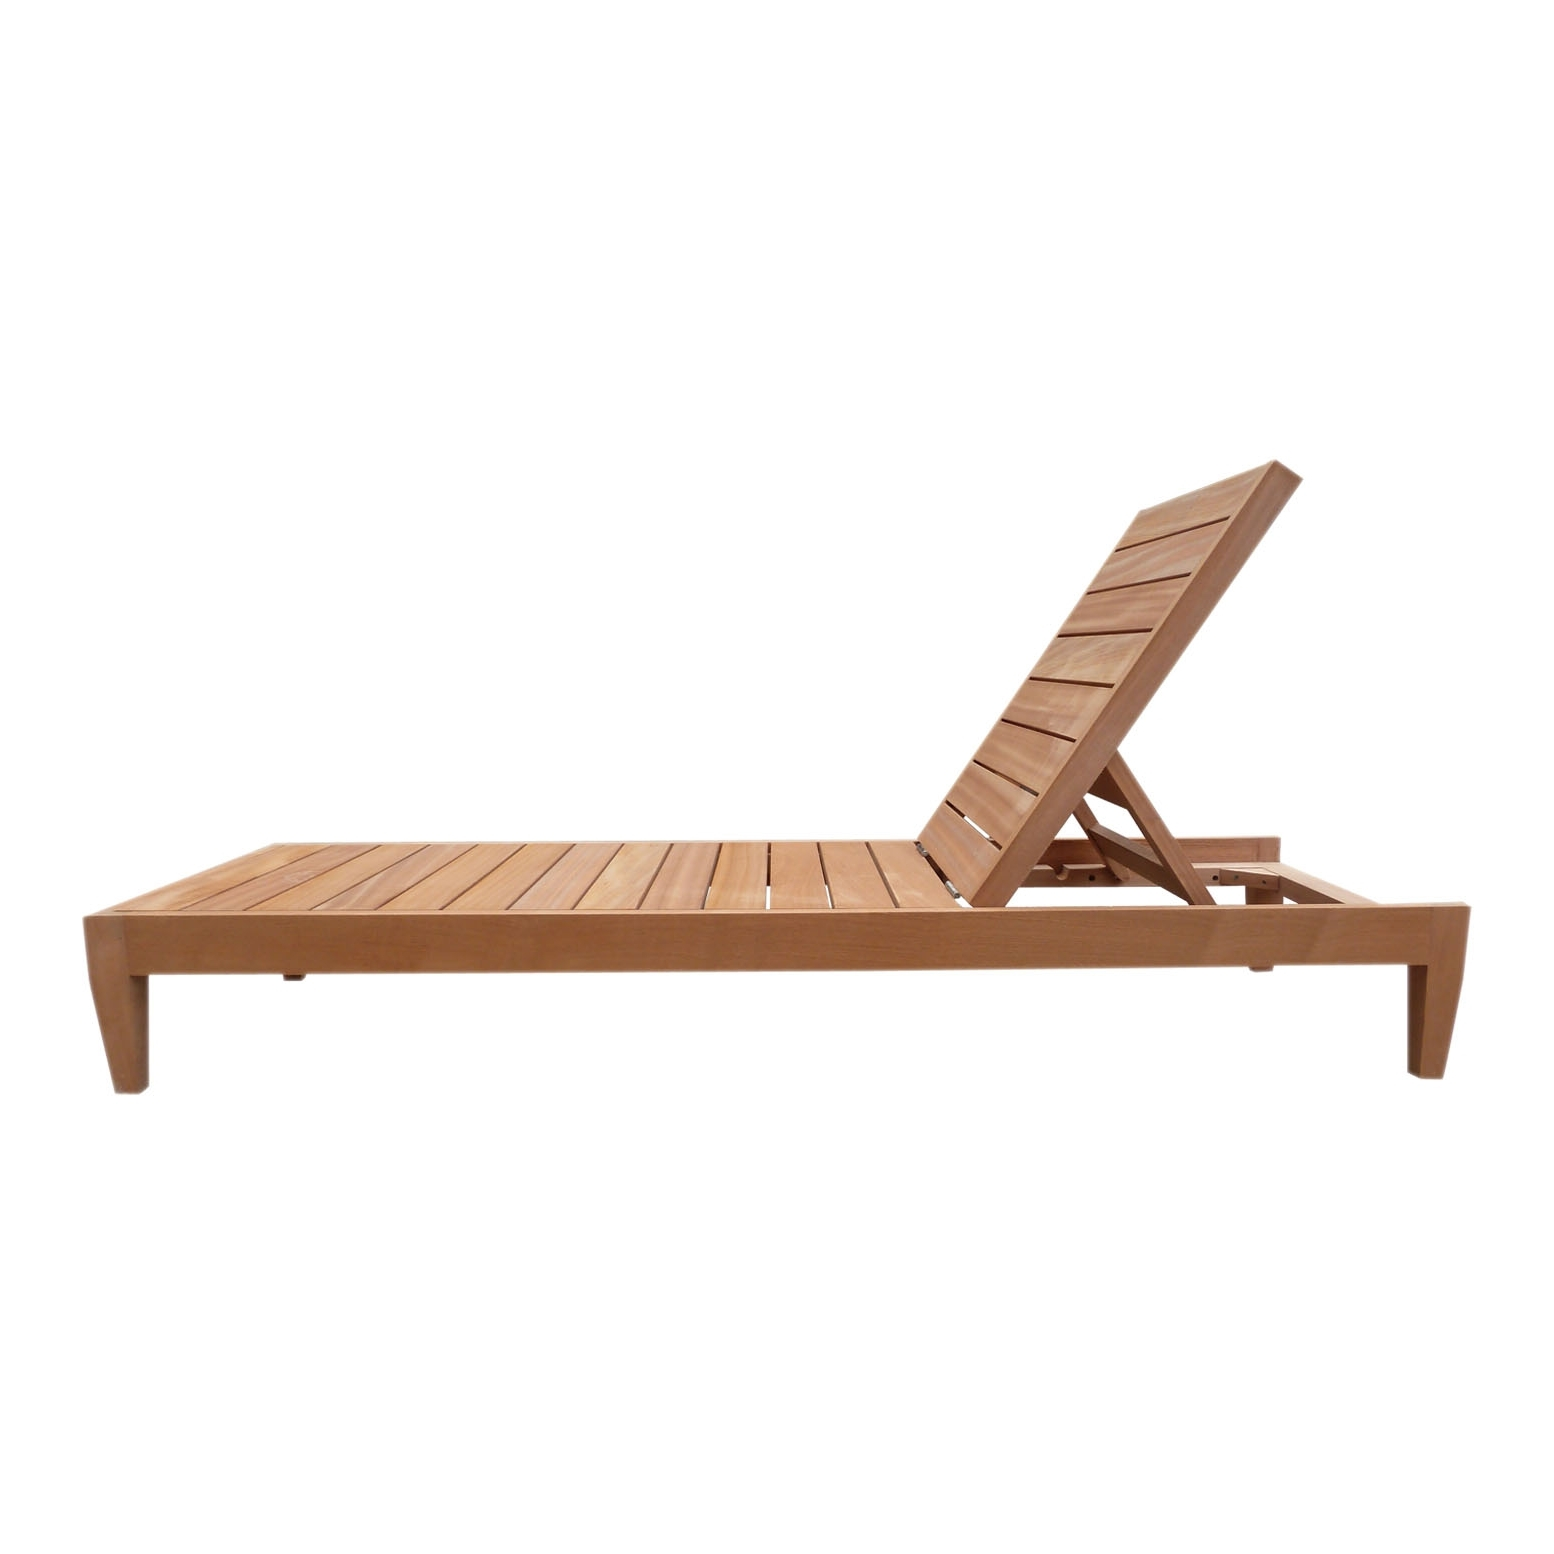 Newest Wooden Outdoor Chaise Lounge Chairs Regarding Resin Chaise Lounge Plastic Chaise Lounge Pool Chaise Lounge (View 8 of 15)